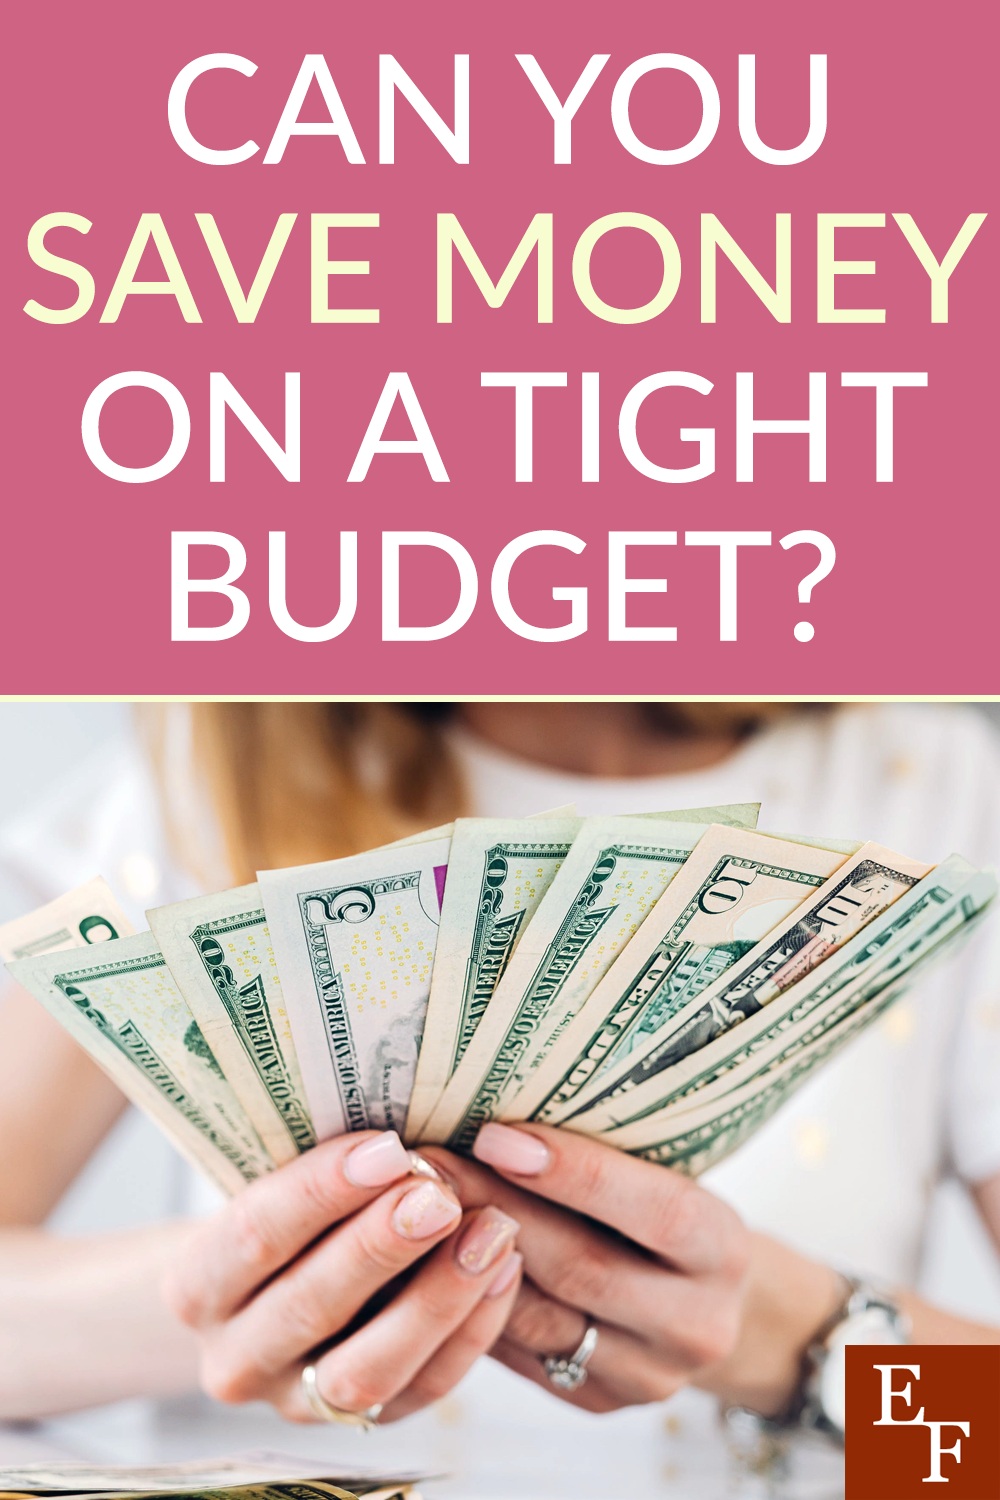 Saving regularly can be the key to success for many people. Here are 7 ideas to help you save money even on a tight budget.